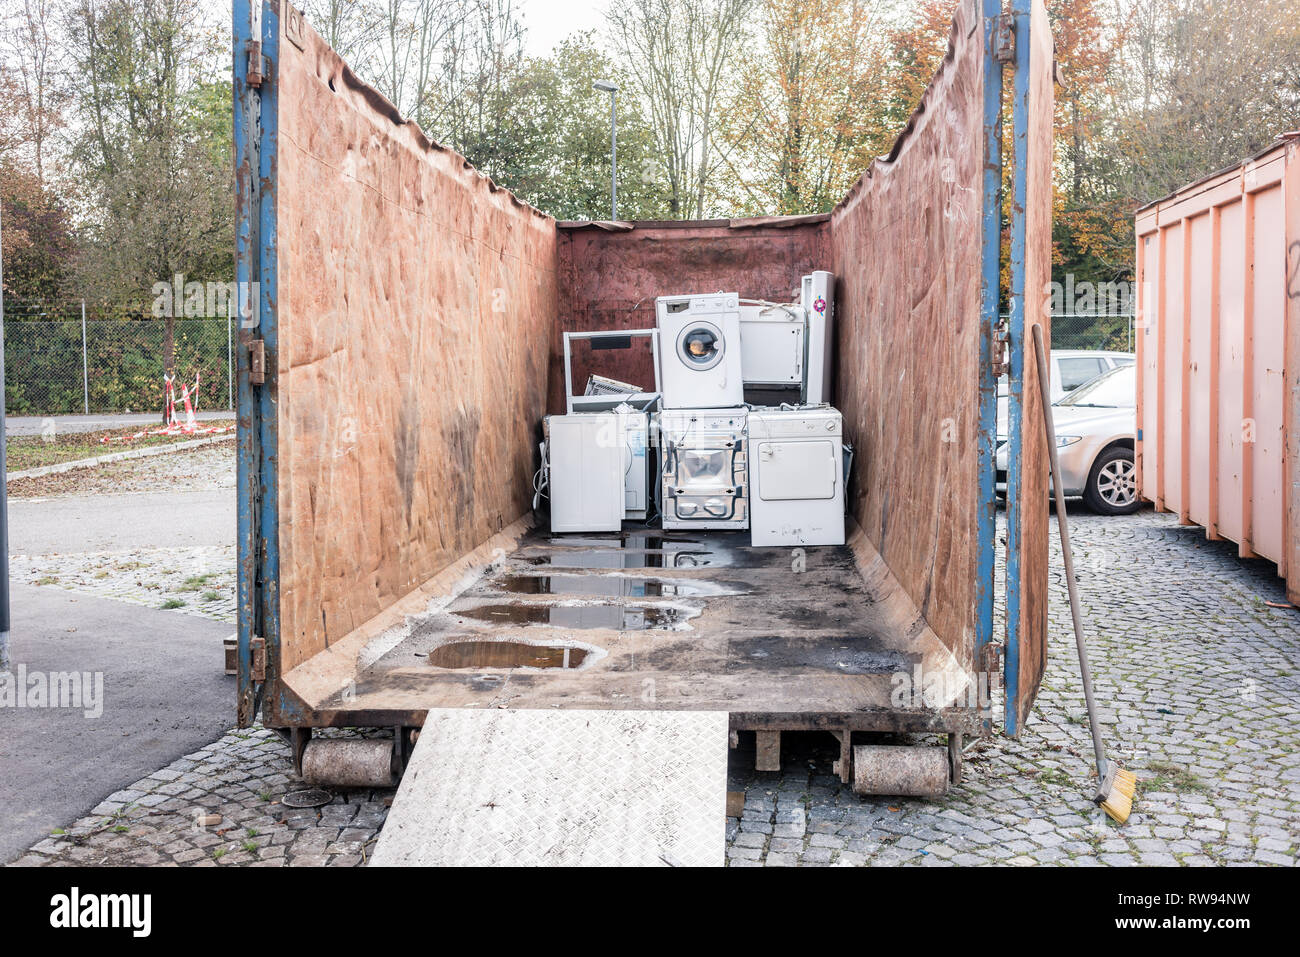 Old electrical appliances in container of recycling center  Stock Photo